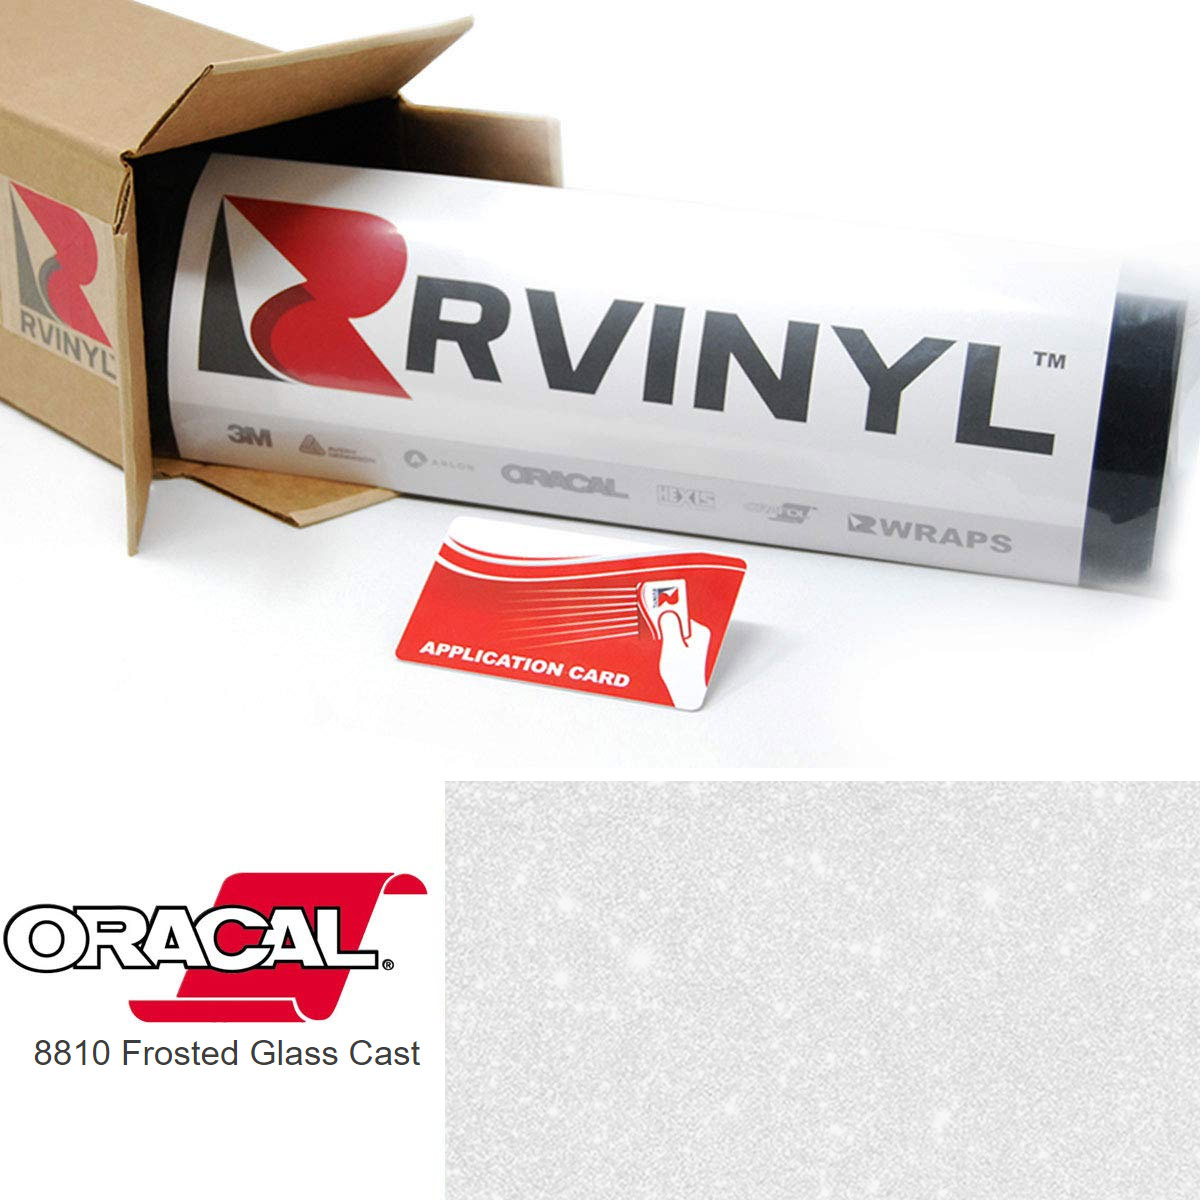 ORACAL 8810 Silver Gray Frosted Calendered Film